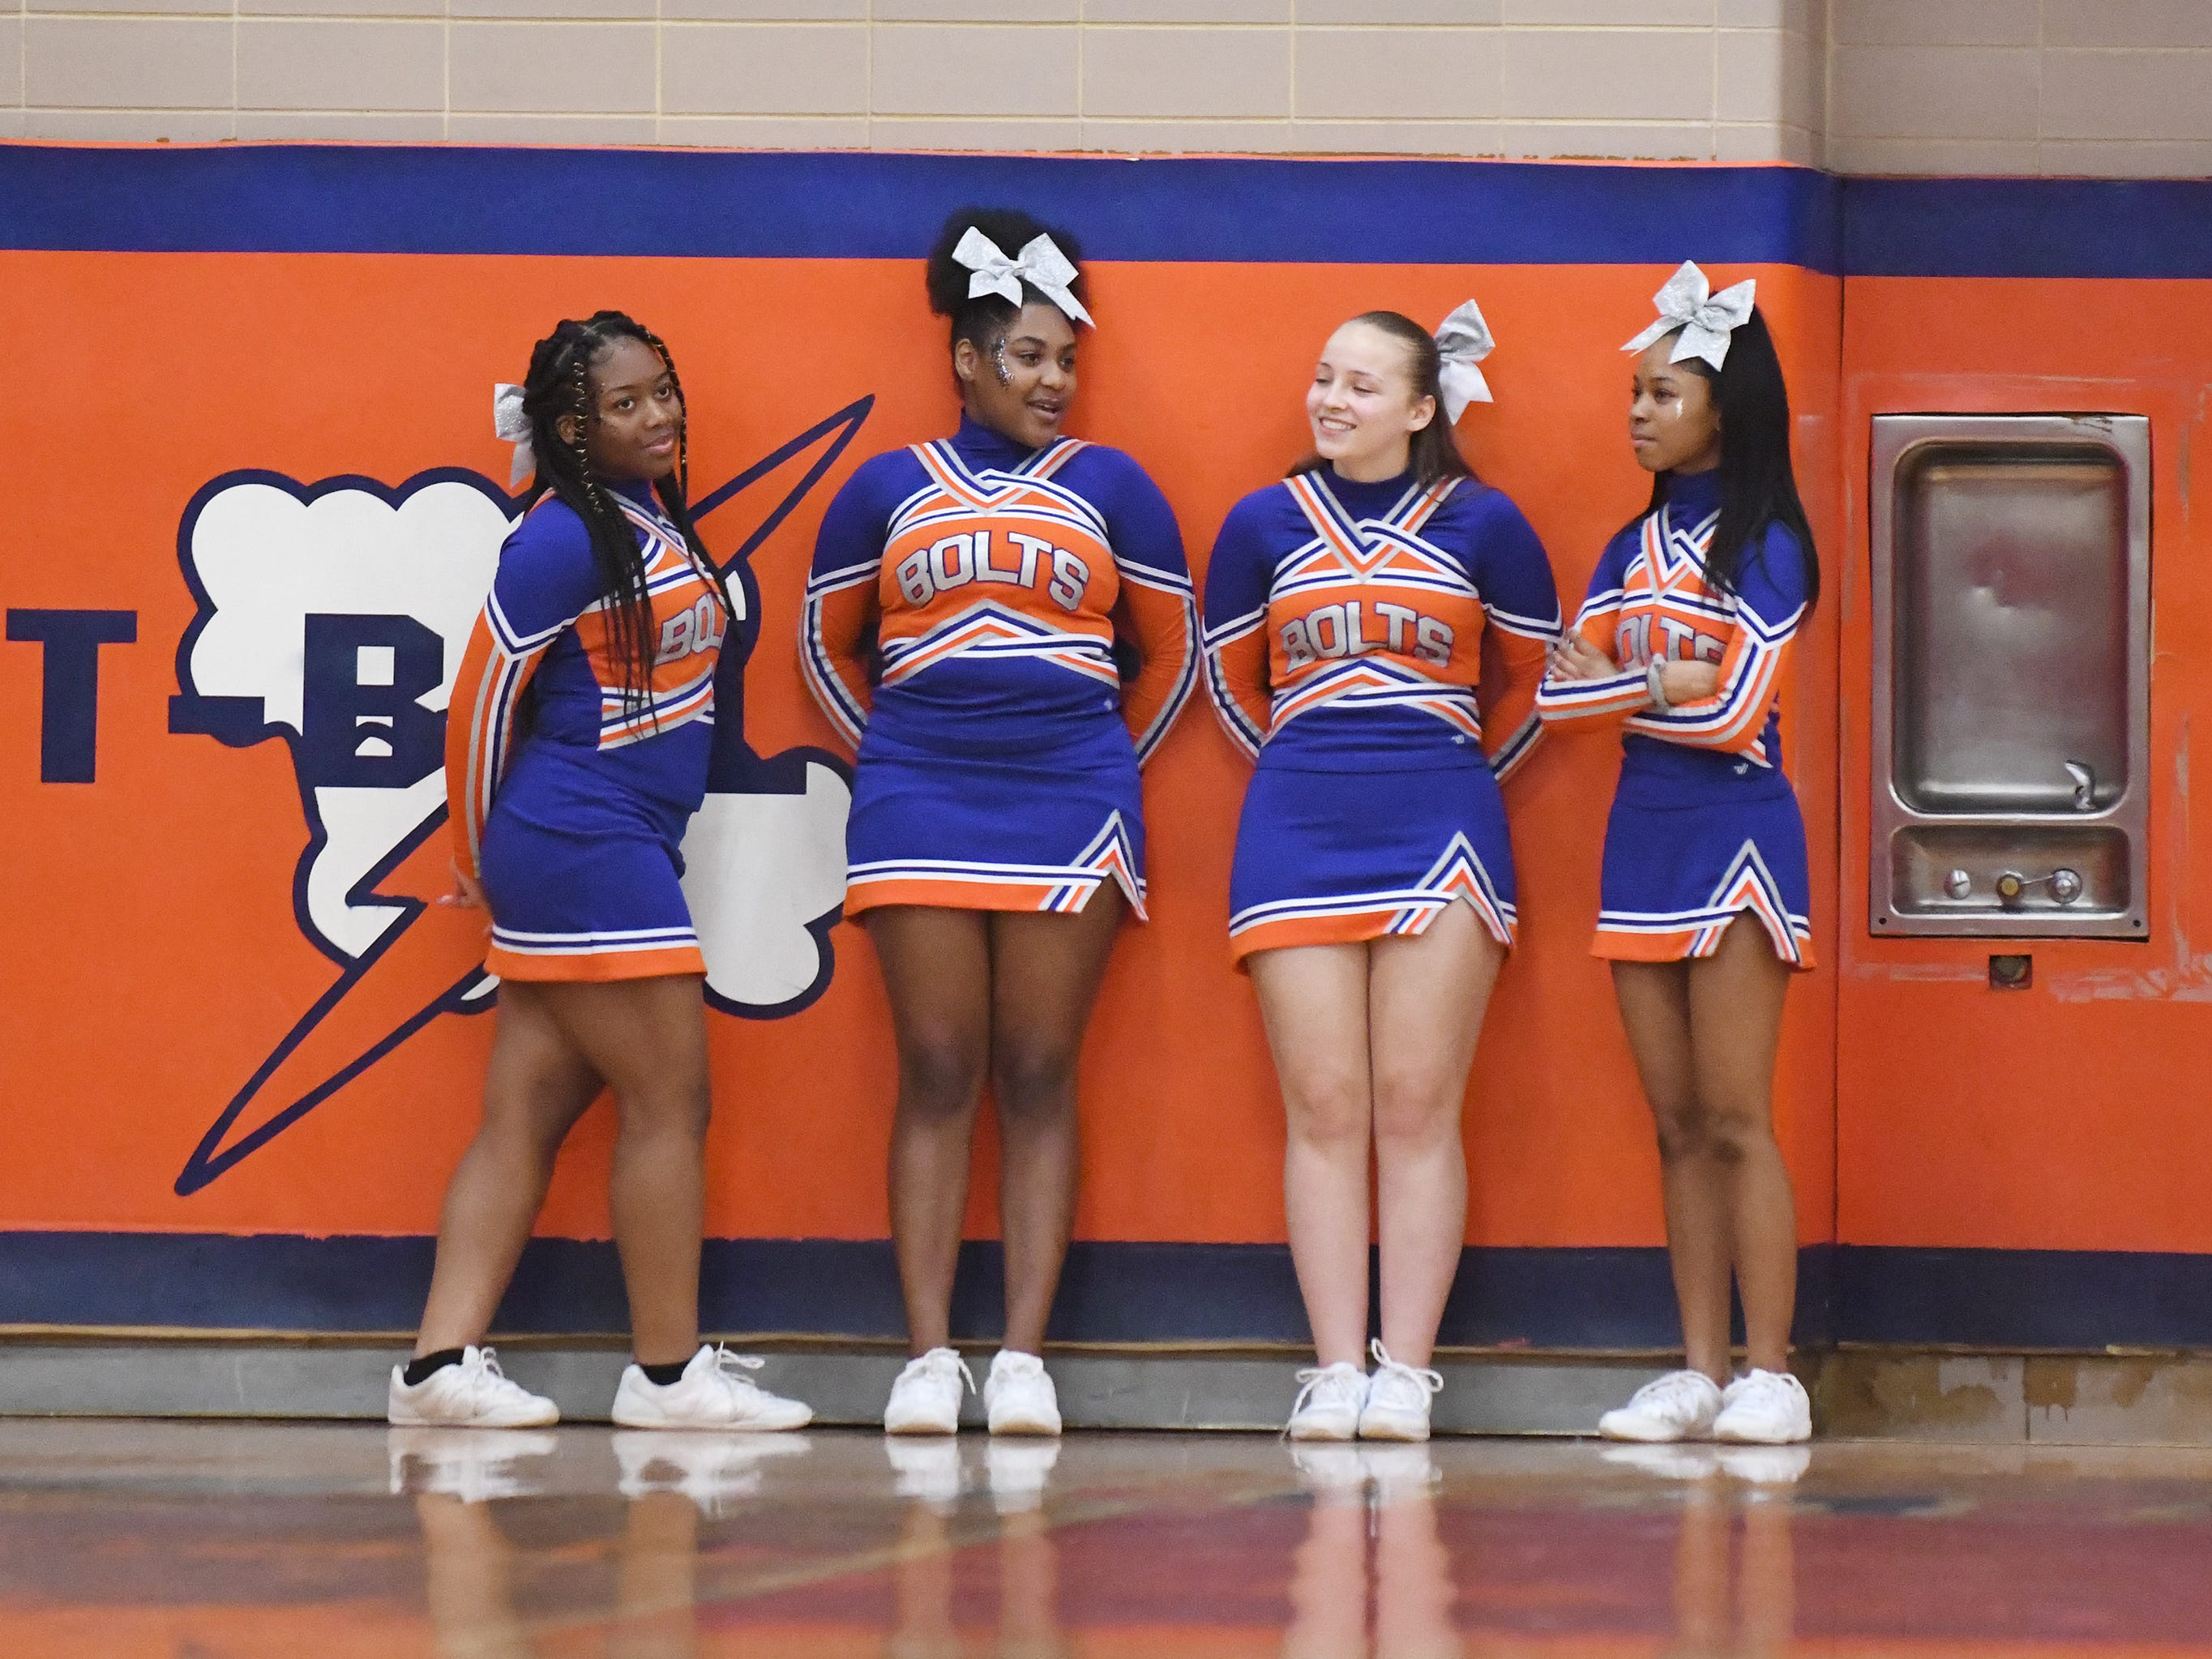 Millville cheerleaders get ready to perform during a boys basketball game against St. Augustine. The Hermits topped the Thunderbolts 66-53 on Friday, Jan. 18, 2019.